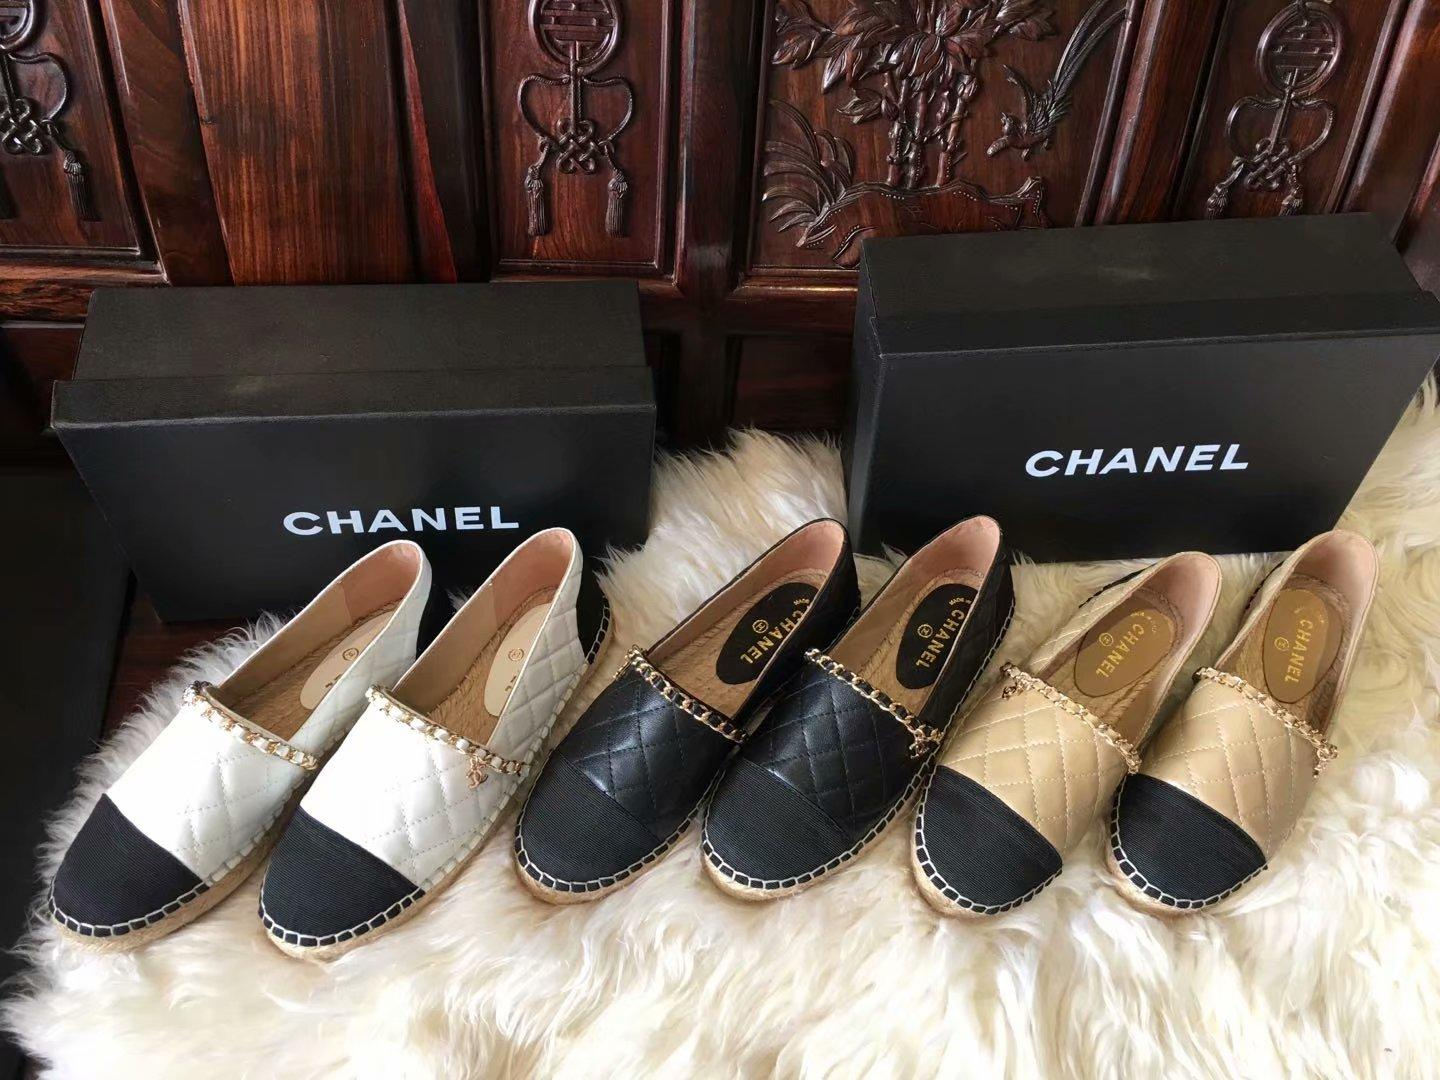 556da4bfe57 Top Quality Letter Leather Chain Espadrilles Thick Bottom Flat Ballet Shoes  Genuine Leather Fashion Woman Casual Shoes Espadrilles With Box Comfortable  ...